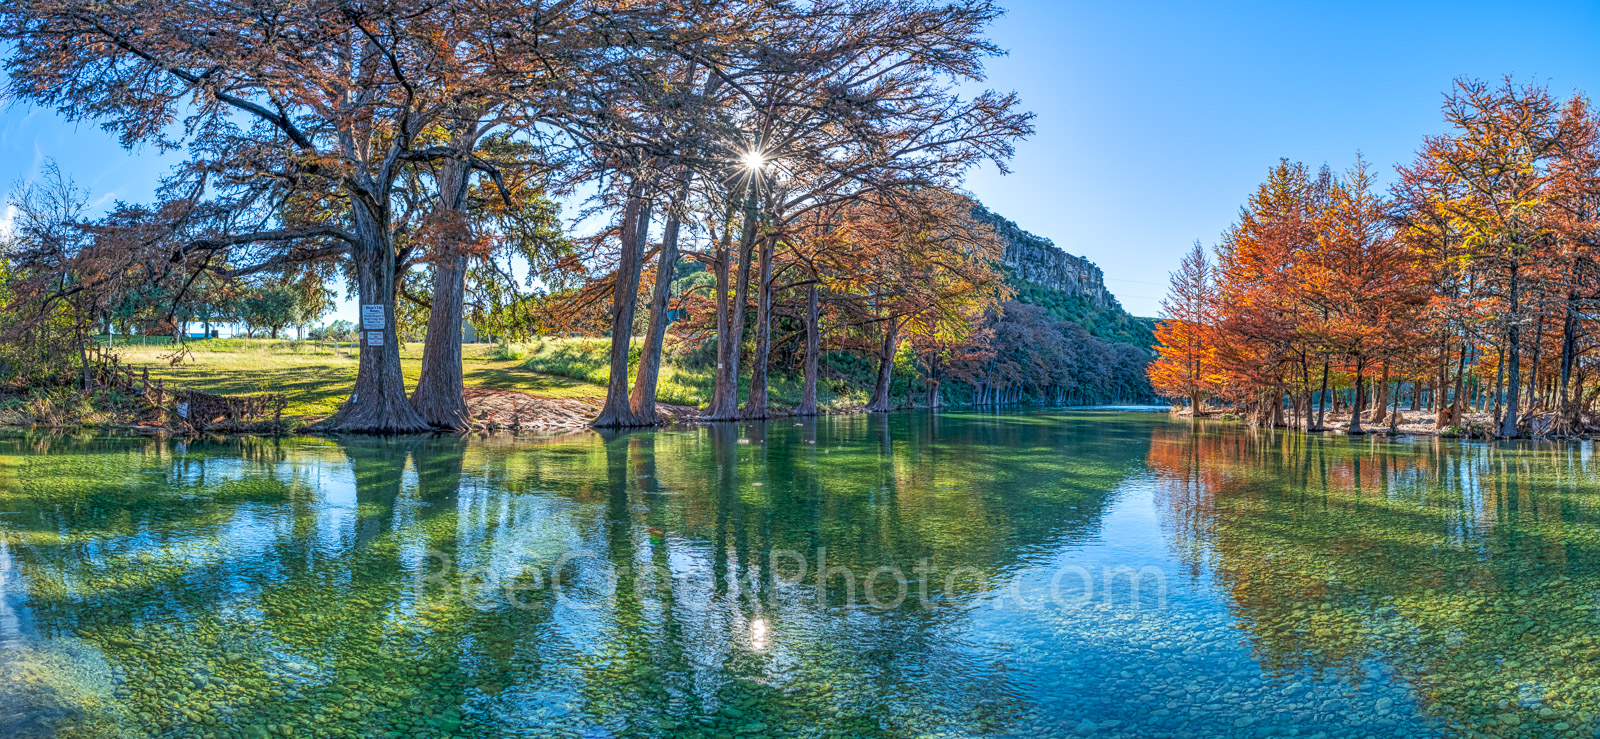 texas hill country, Frio River, sun, twinkle, trees, cypress trees, fall colors, autumn, banks of the river, clear, blue green water, rocks, pebbles, waters. old baldy, landmark, texas landscape, texa, photo